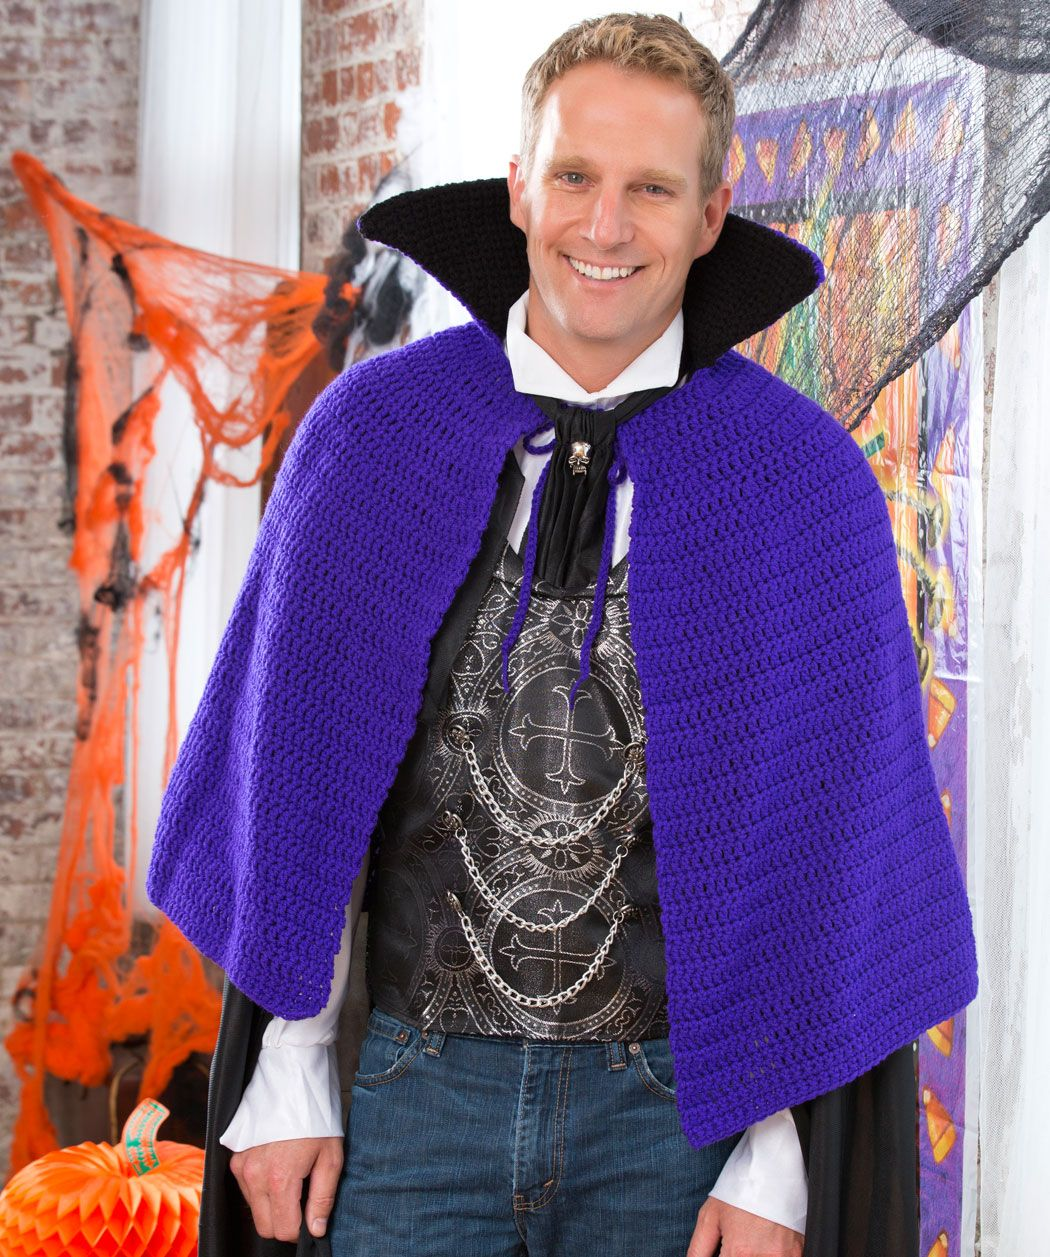 Vampire cape free crochet pattern crochet halloween vampire cape free crochet pattern bankloansurffo Image collections